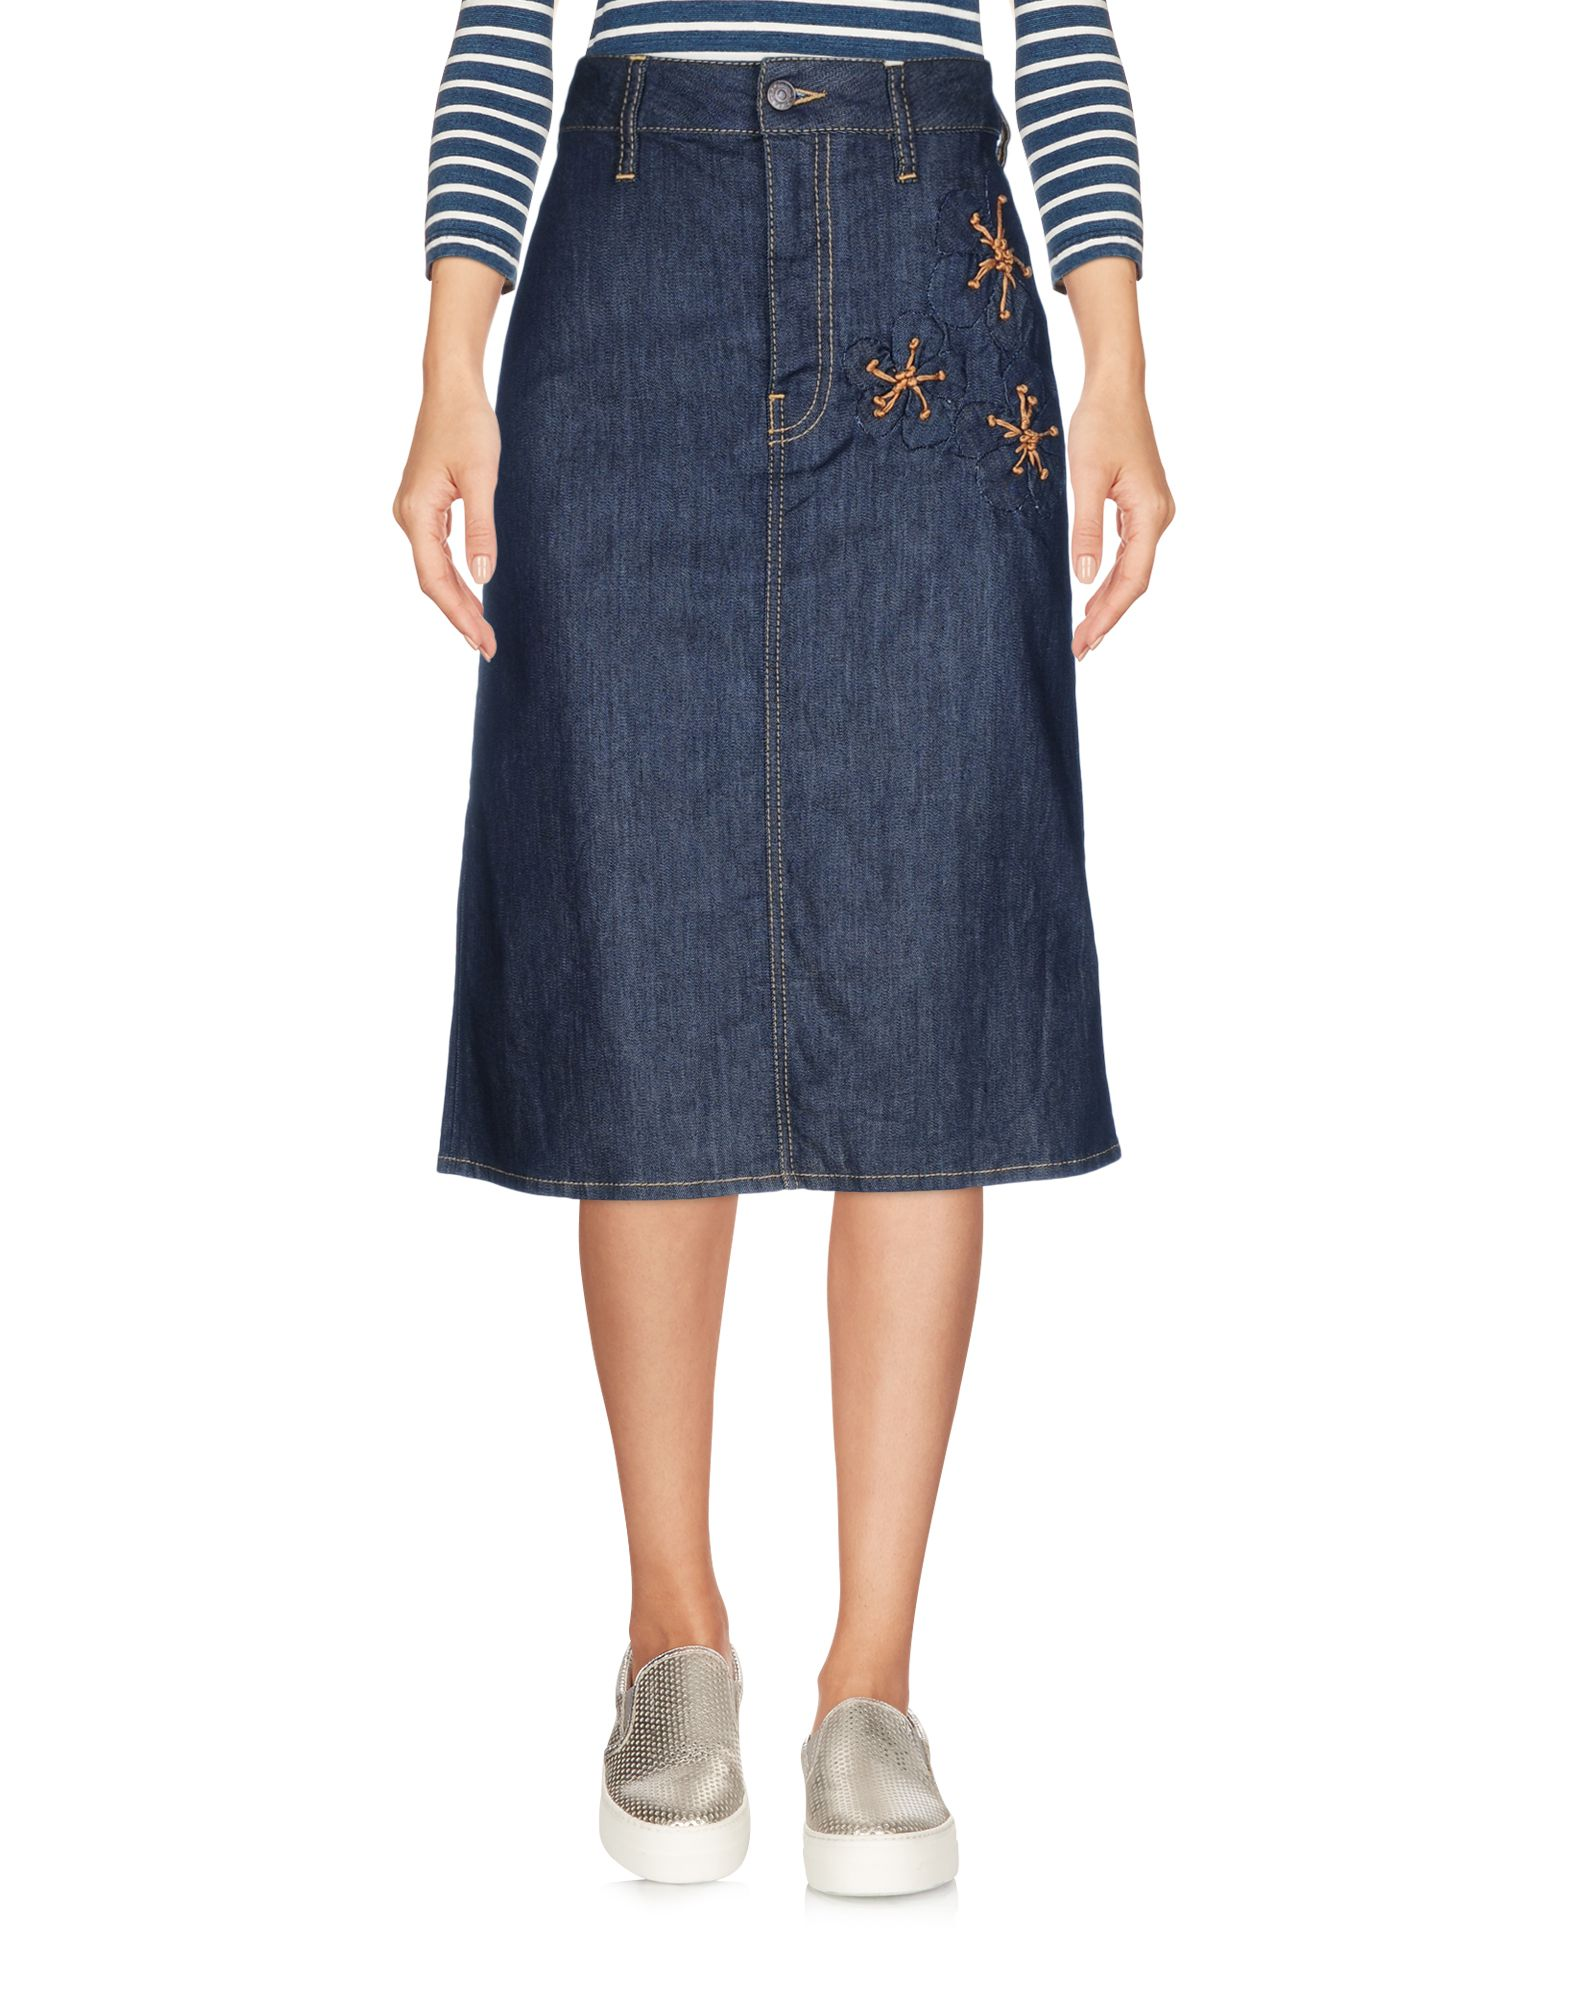 Gonna Jeans Dsquared2 Donna - Acquista online su EWIGm